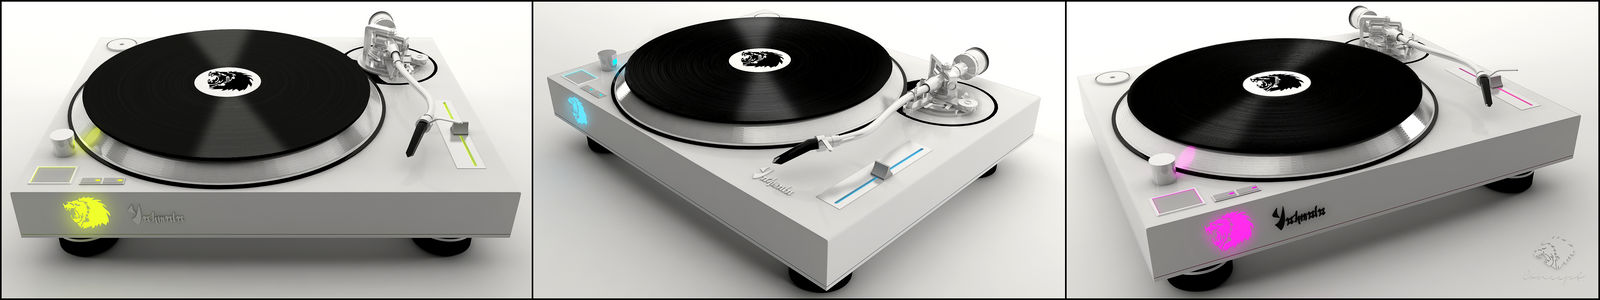 Turntable concept